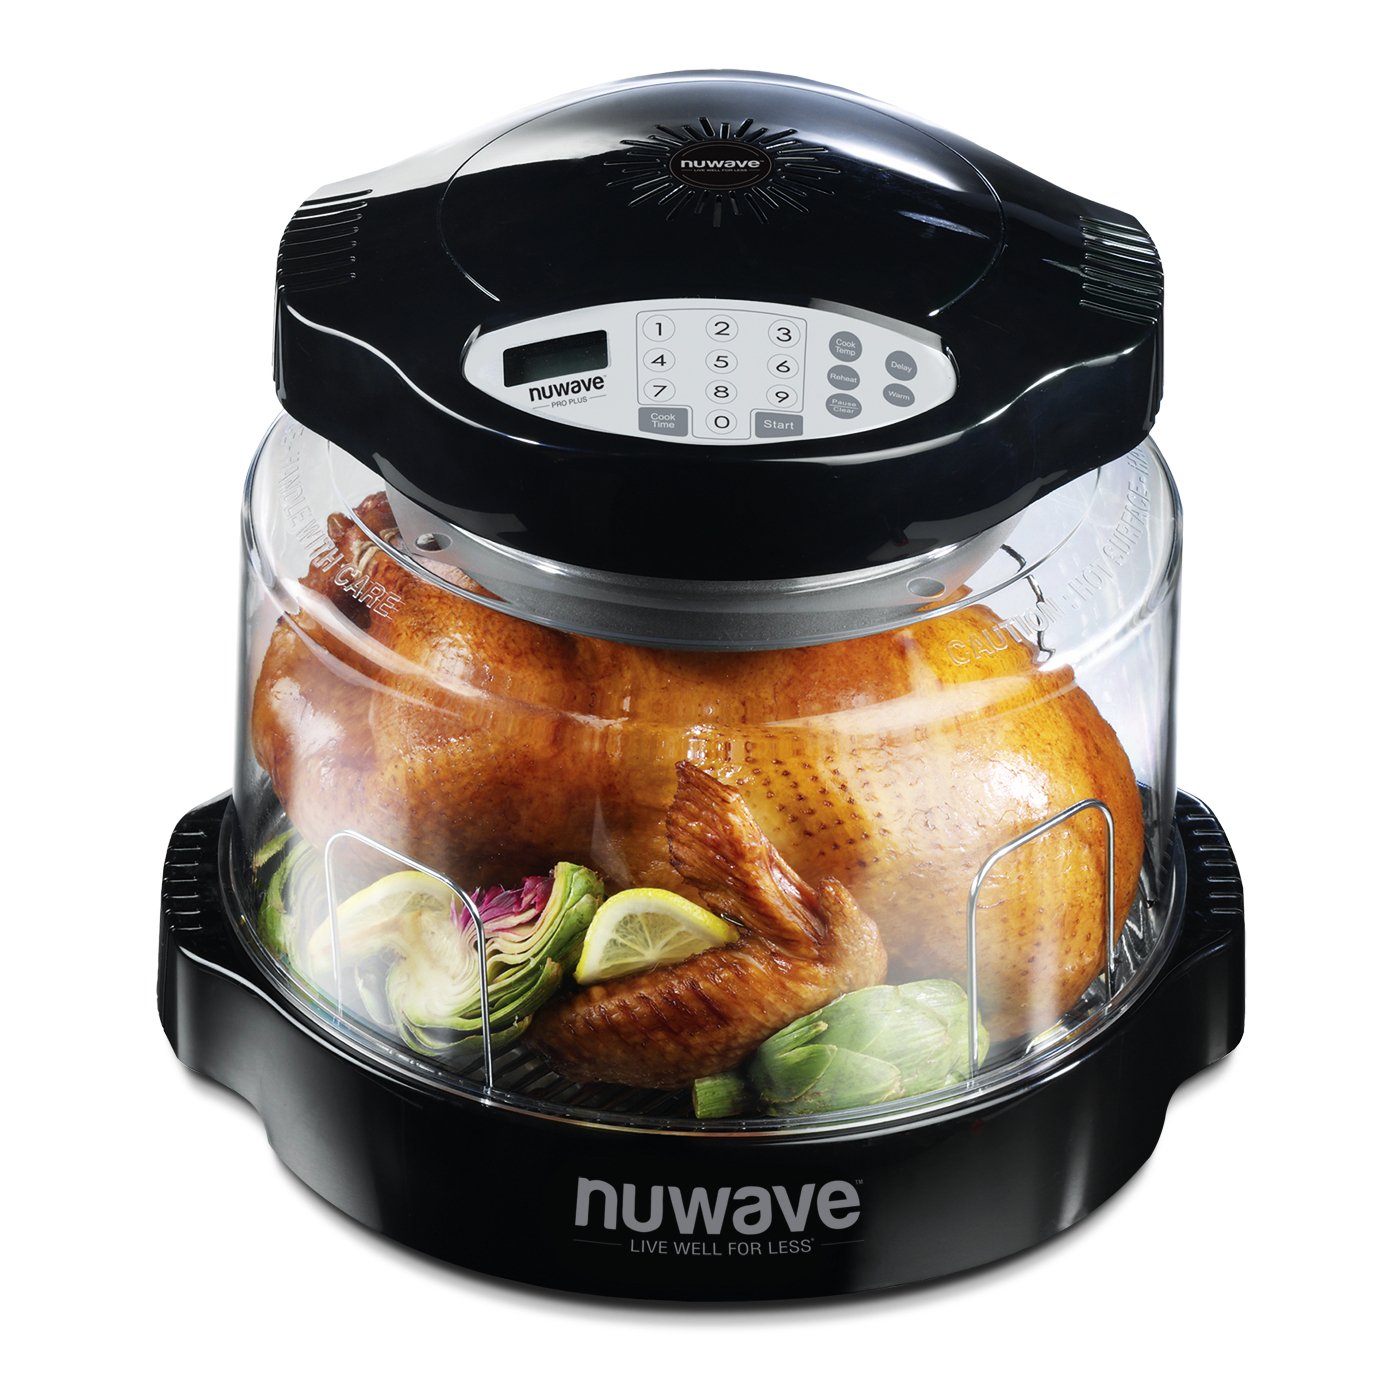 NuWave Oven Pro Plus with Black Digital Panel